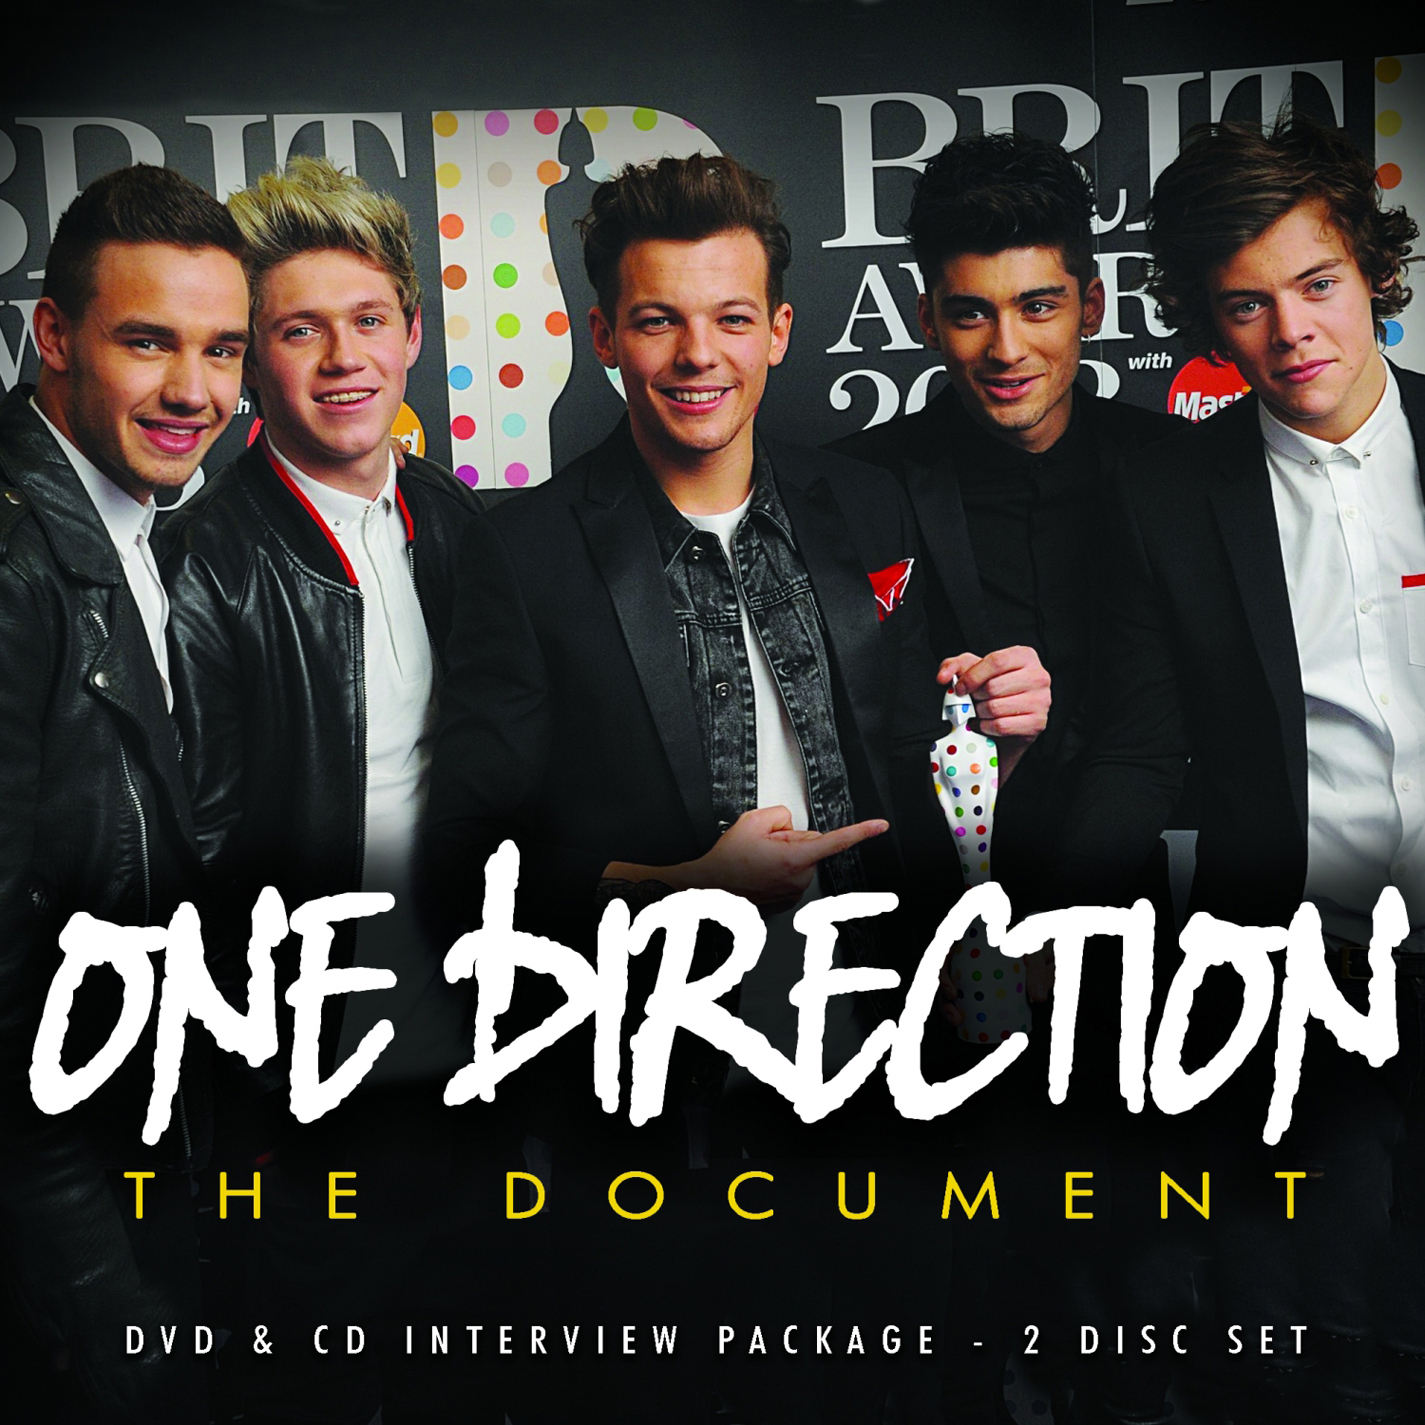 The Document: One Direction